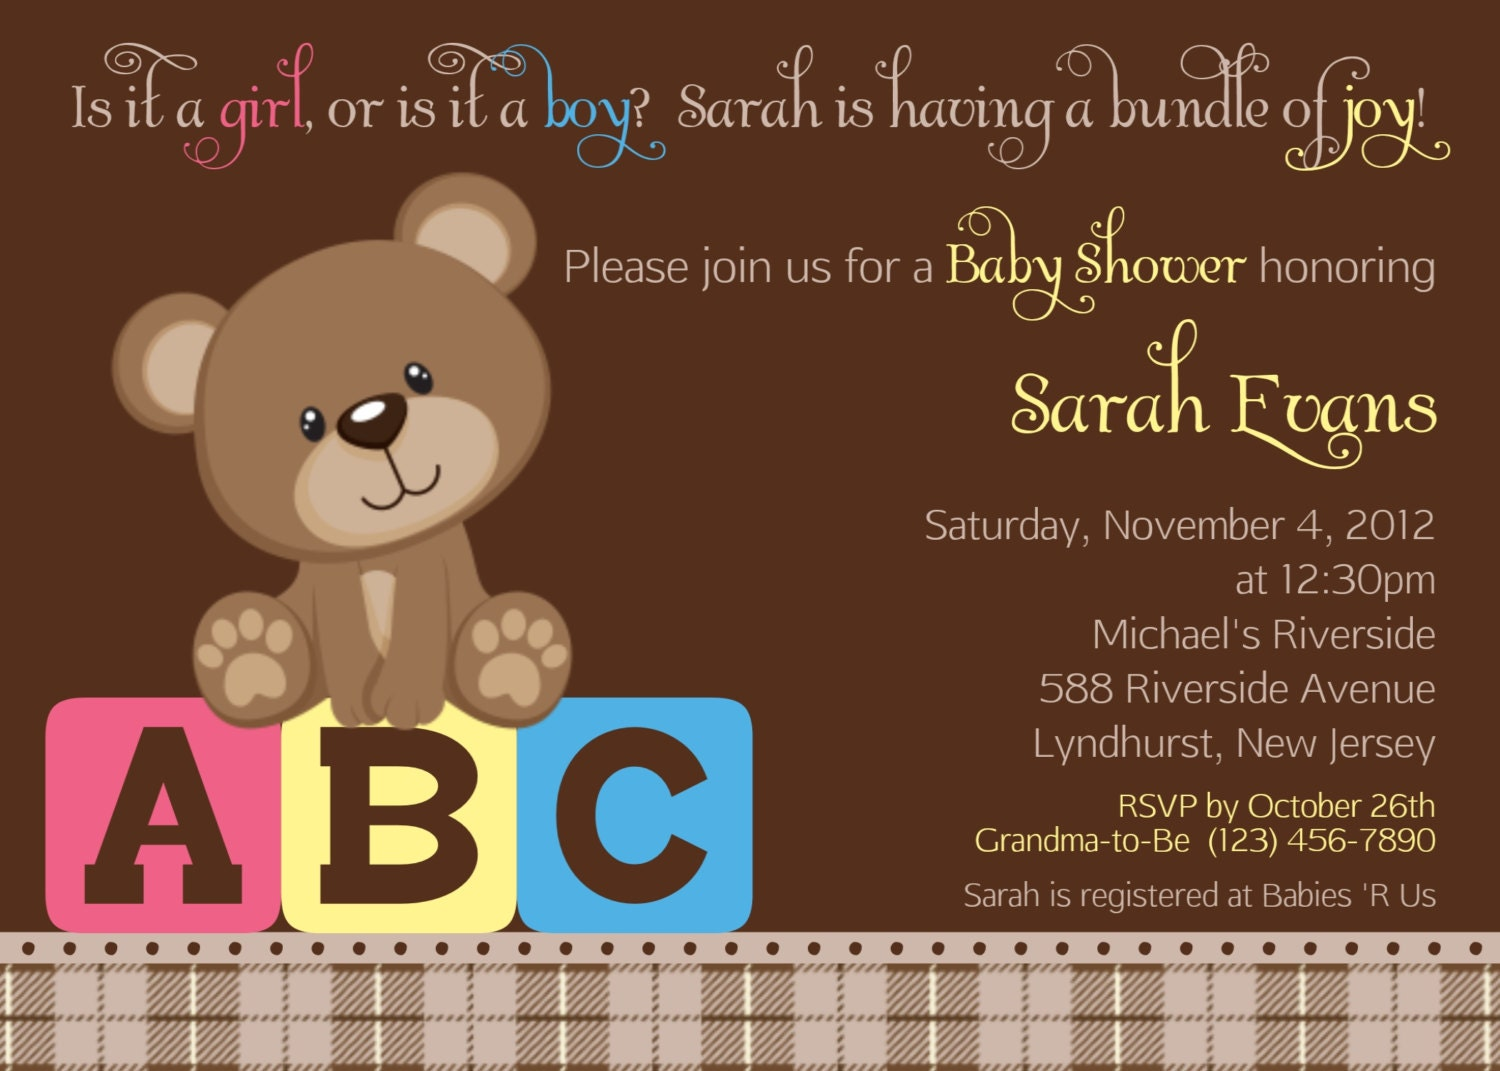 Baby Shower Cowboy Invitations was luxury invitations ideas